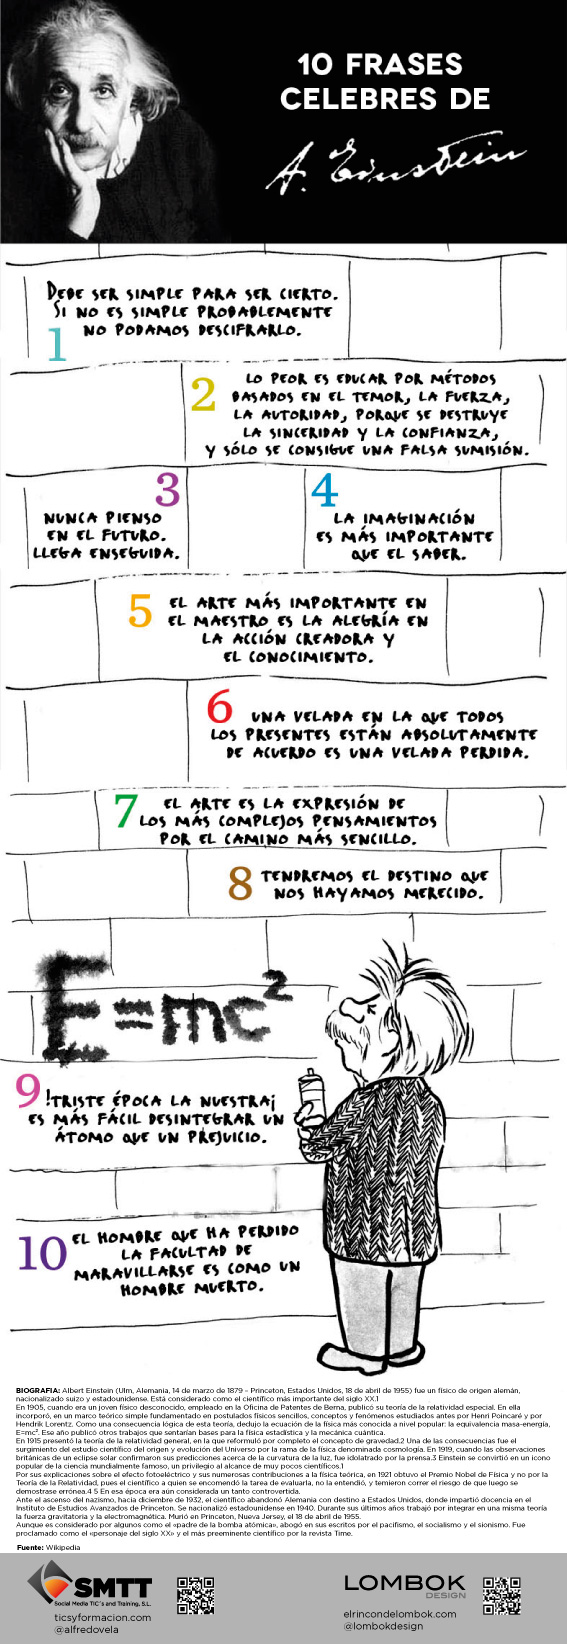 10 frases celebres de Einstein, de Lombok Design y Social Media TIC's and Training